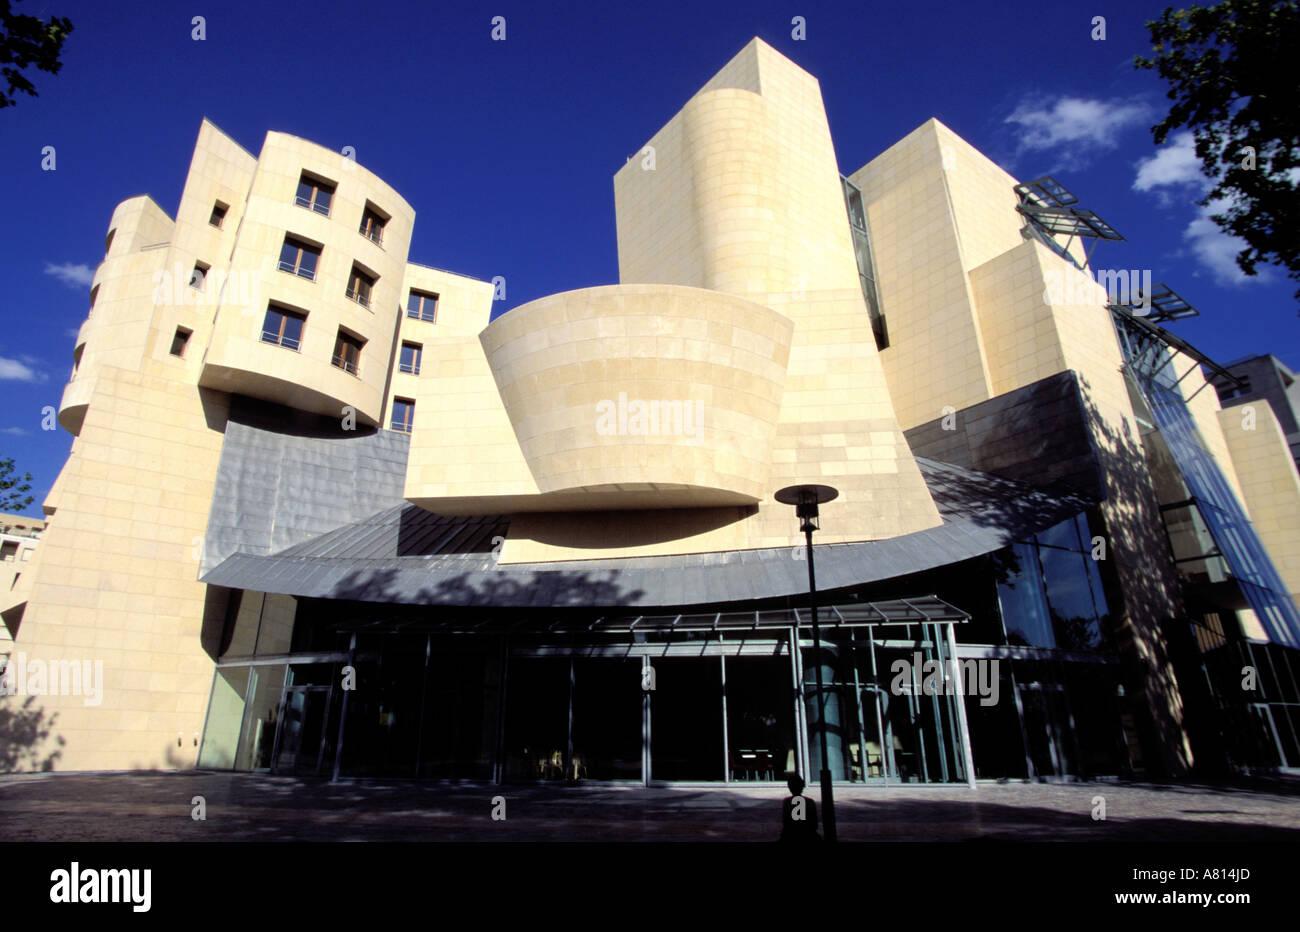 France, Paris, new center of cinema by architect Frank Gehry, in Bercy park - Stock Image